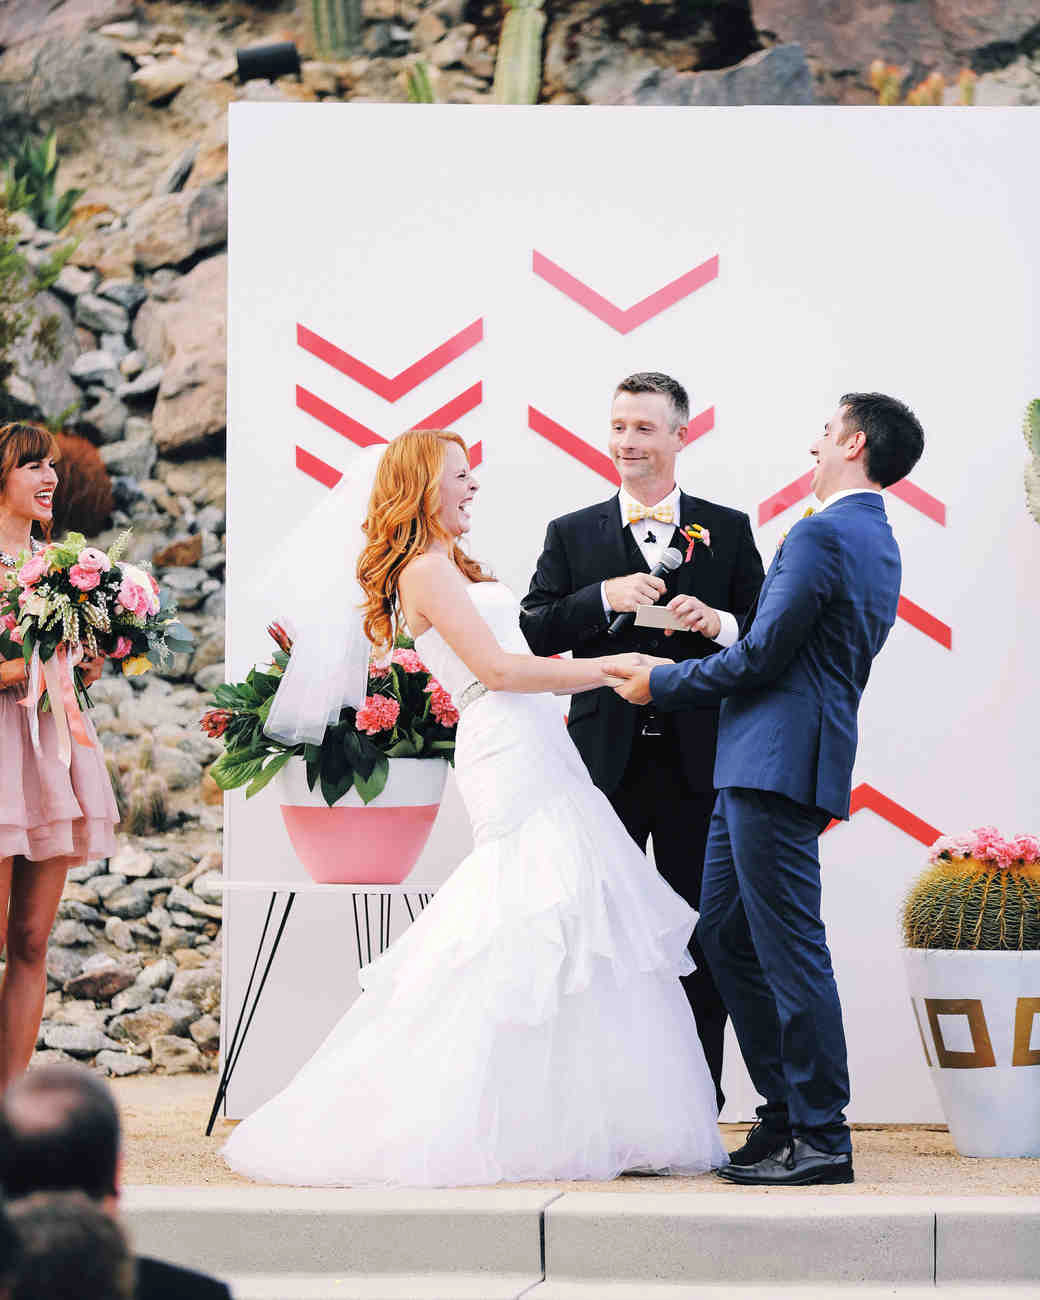 Simple Wedding Ceremony Outline New A Basic Wedding Ceremony Outline for Planning the order Of